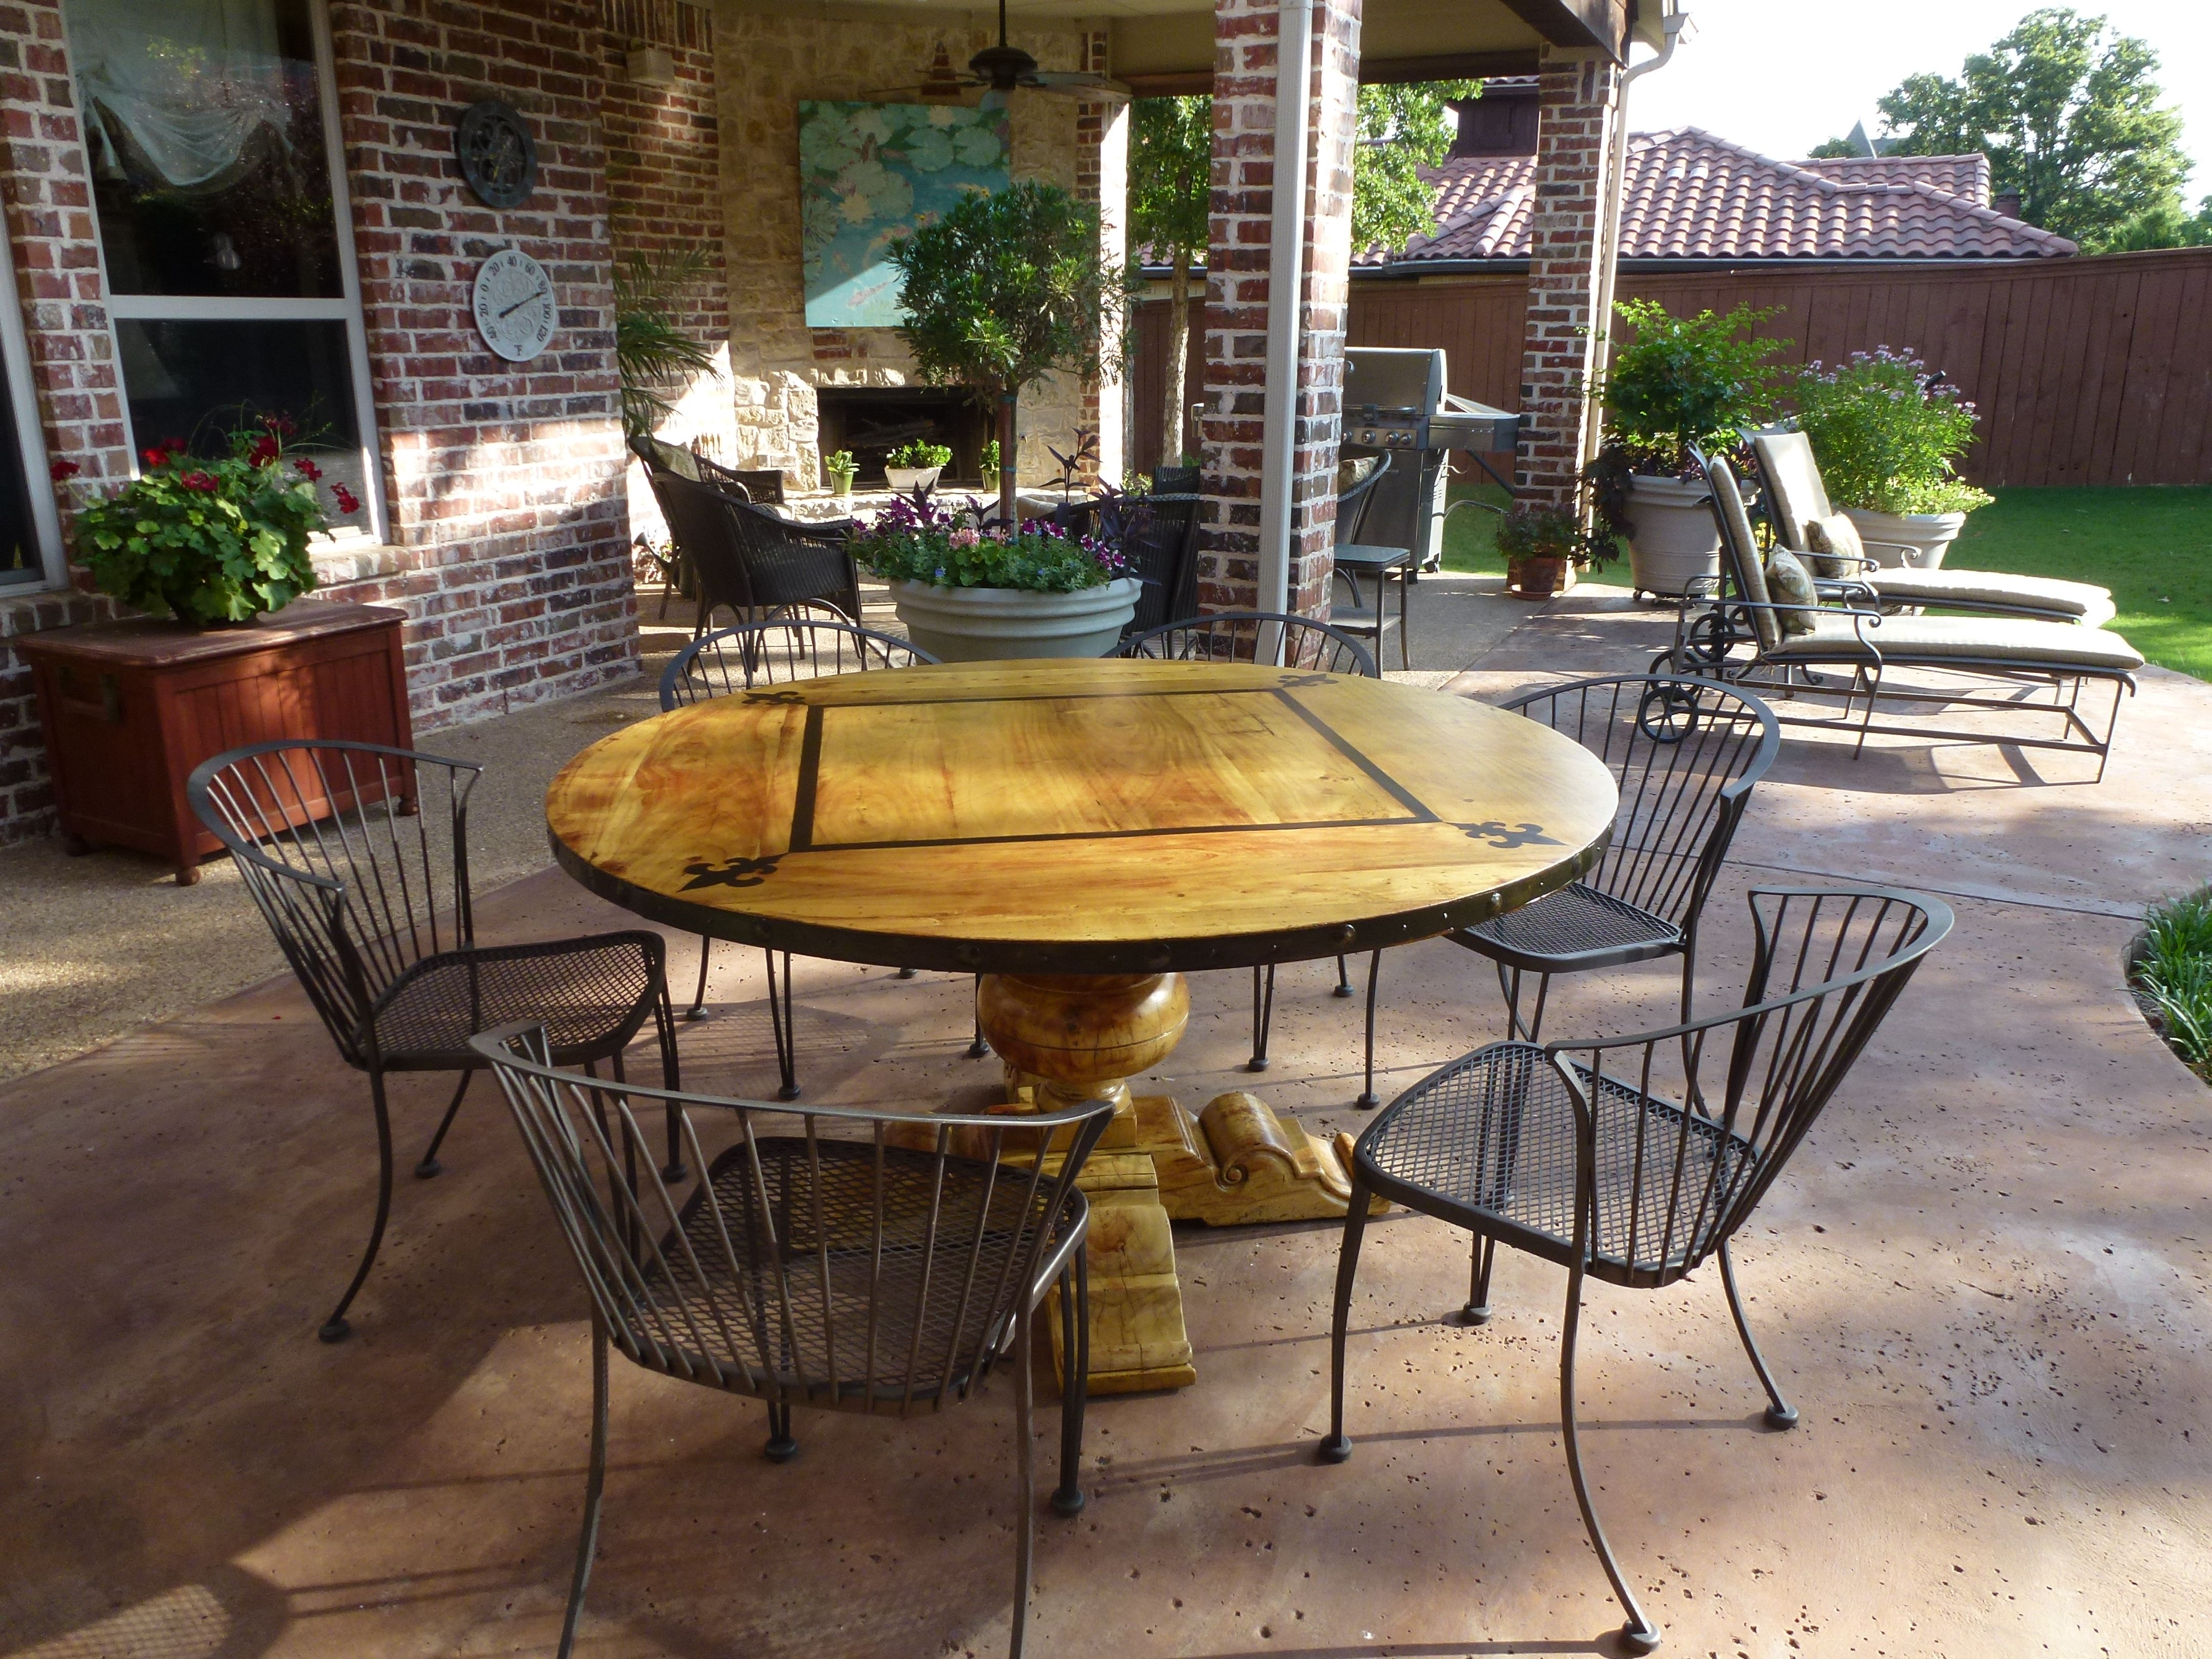 I used Epifanes varnish to refinish this wooden table for outdoor use.  I applied the varnish over Restor-it Clear Penetrating Epoxy Sealer.  See before/after pics on my facebook page with more info about the project.  You can find it under Photos/Albums/Patio Refinishing Project.